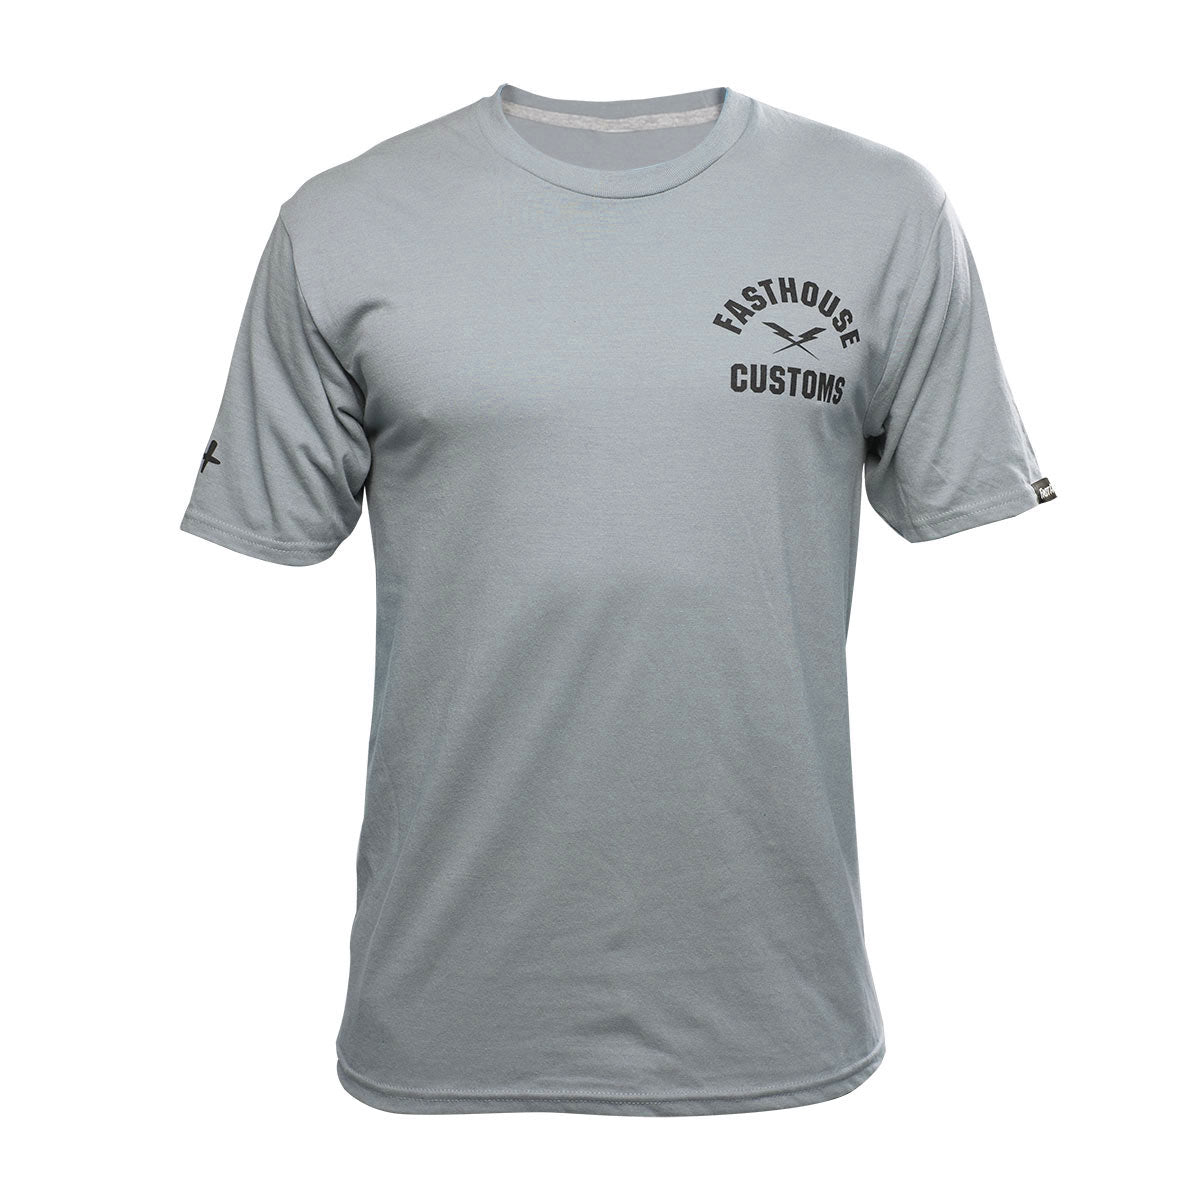 Fasthouse - Jody Tech Tee MTB - Grey